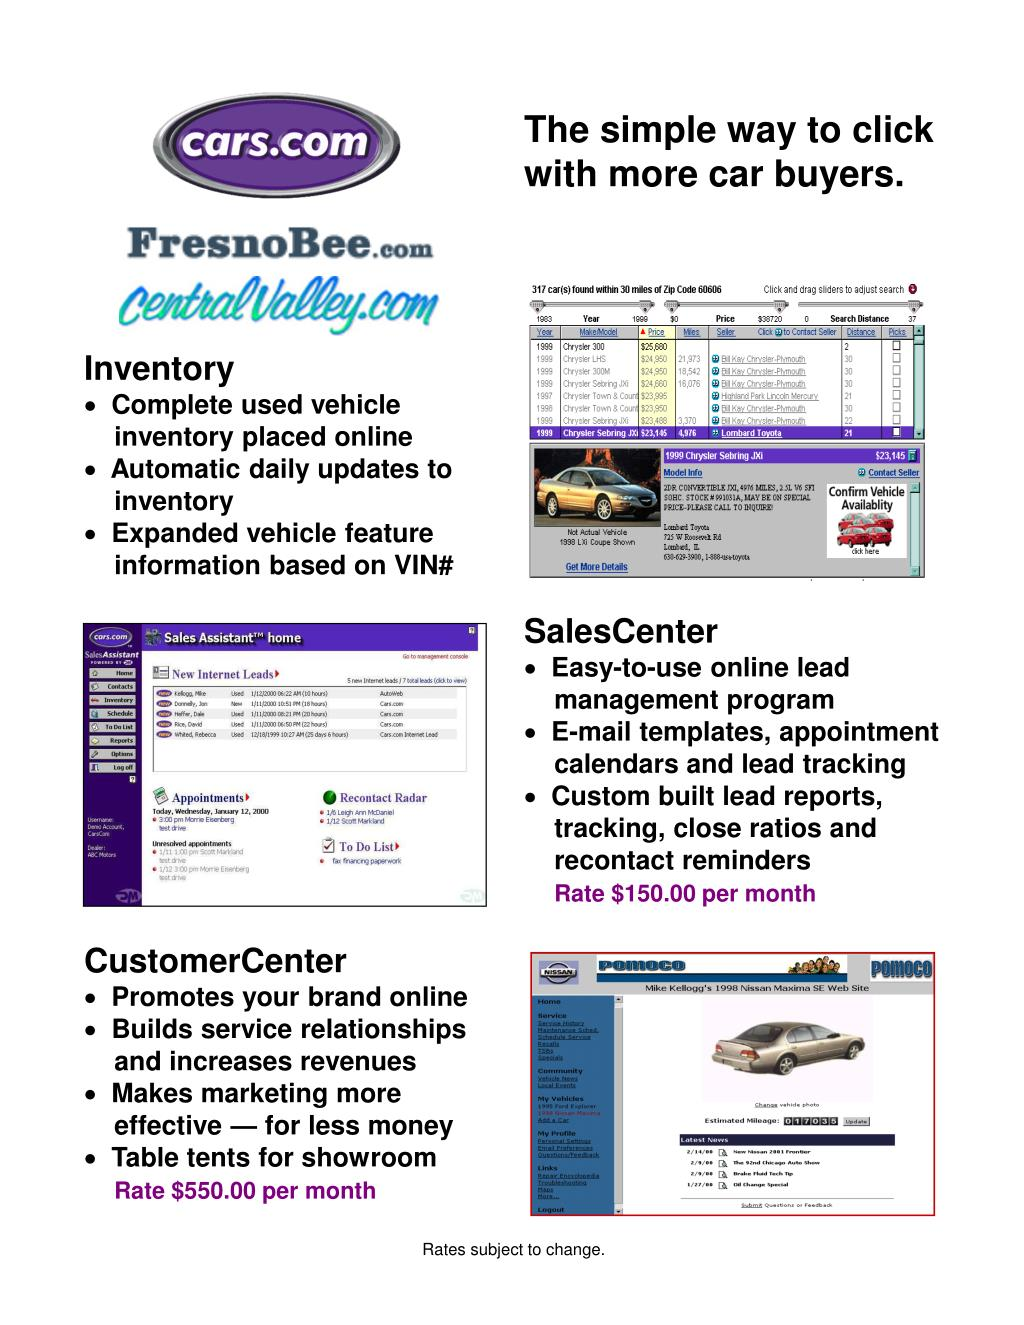 The simple way to click with more car buyers.